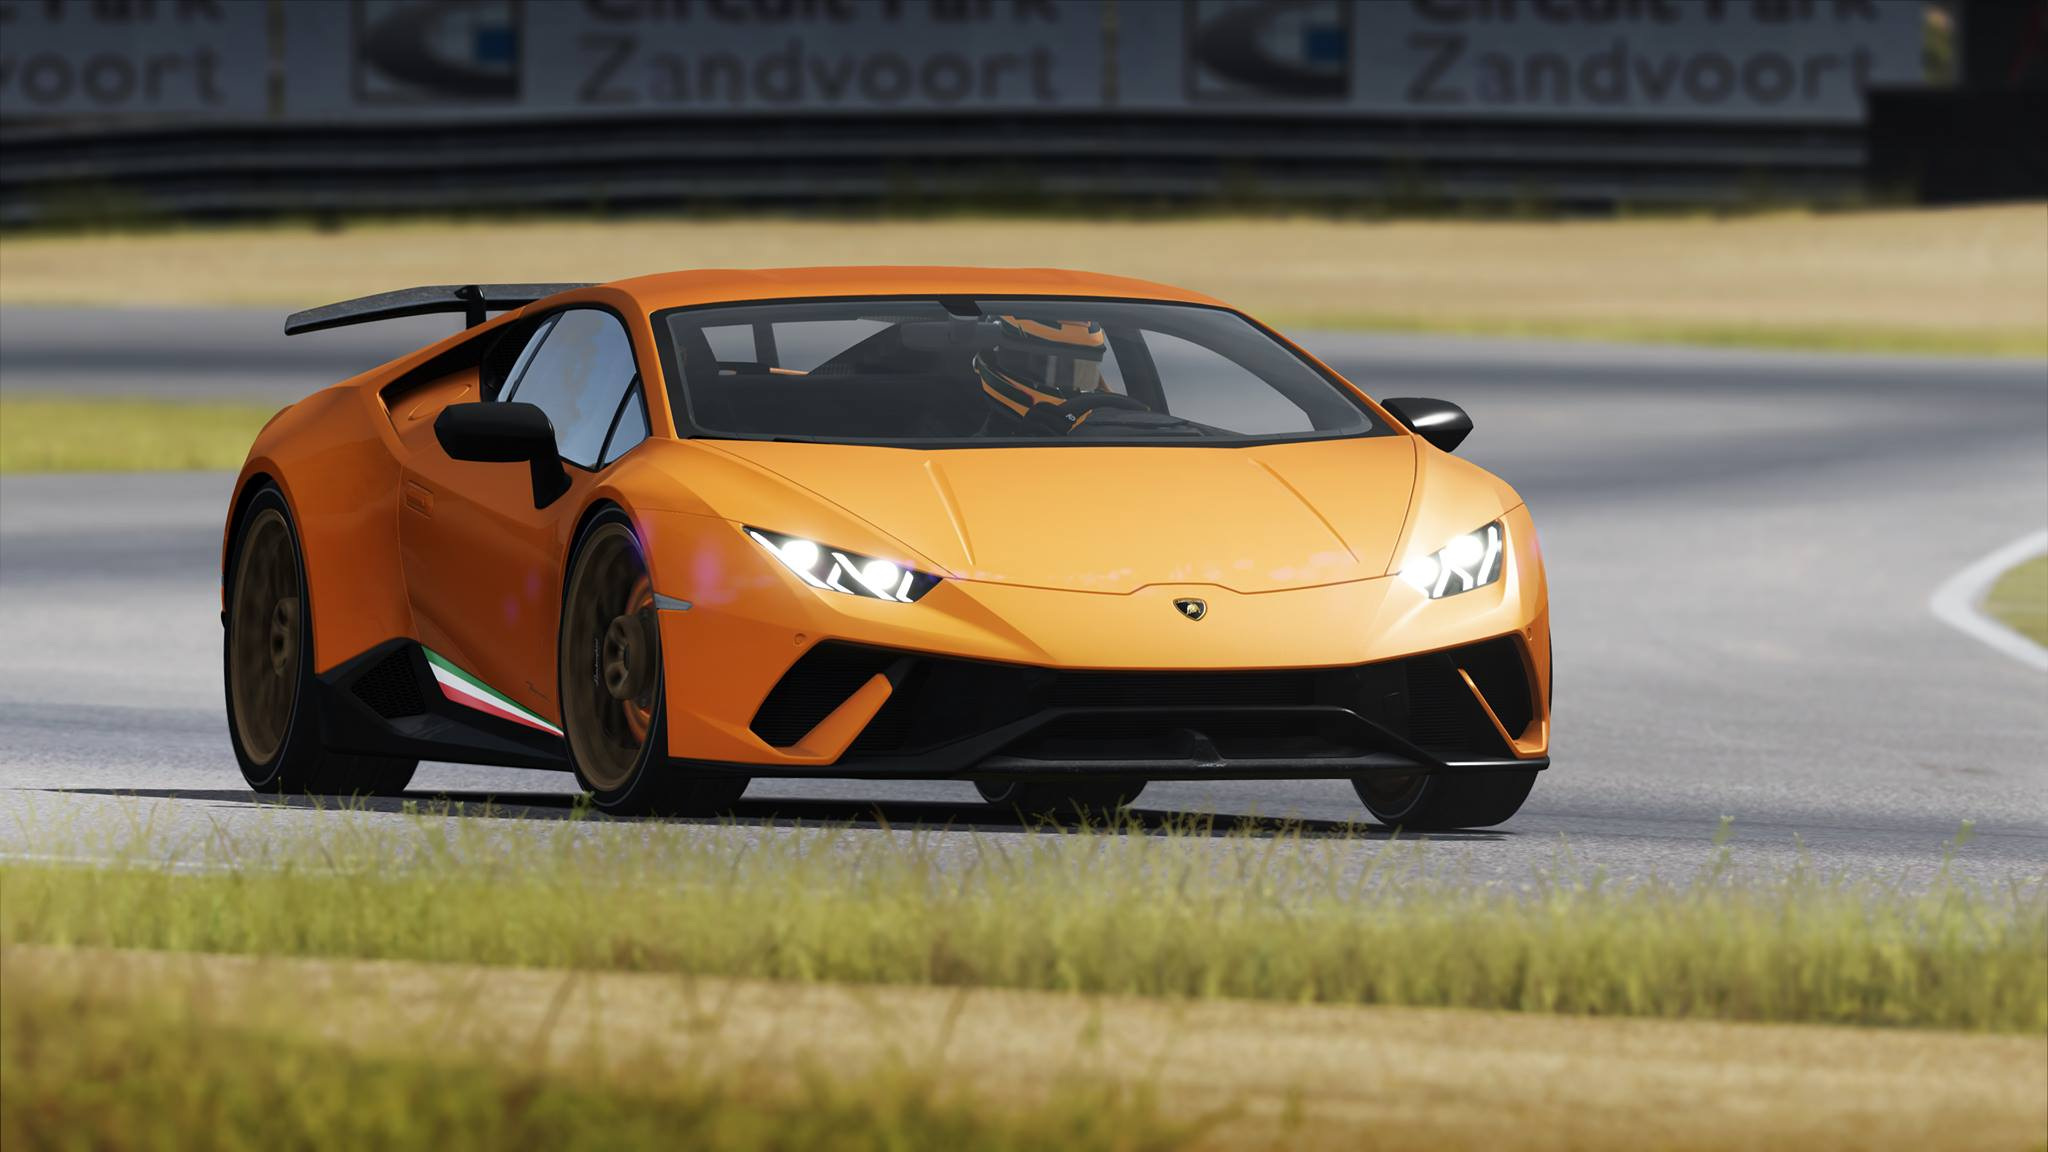 Huràcan Performante_1.jpg